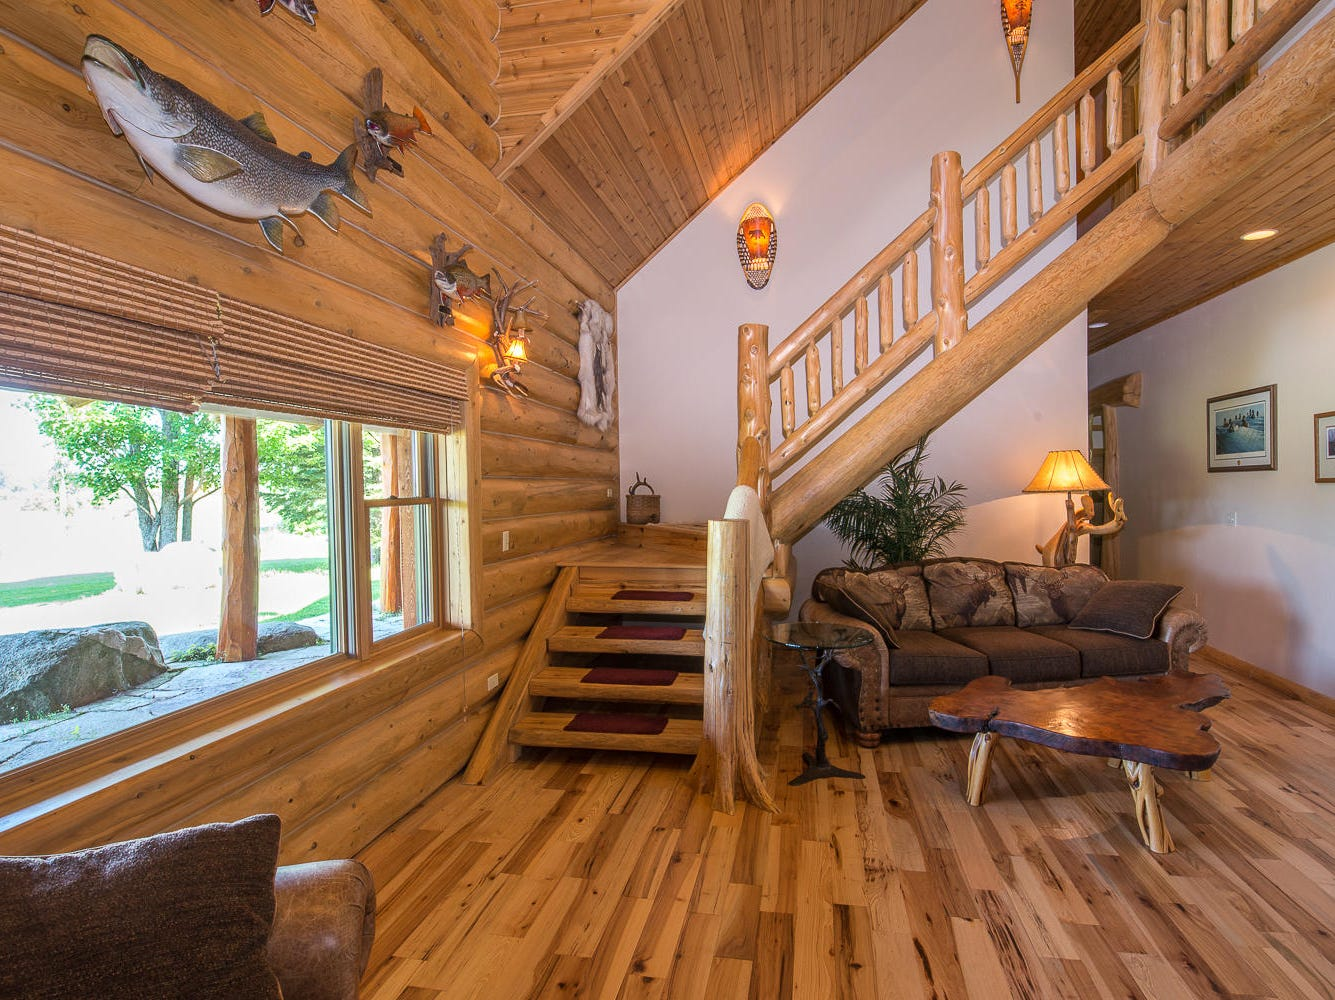 This 9,500-square-foot log home for sale in Sault Ste. Marie is listed at $2.25 million and features two fireplaces and a horse barn, and sits on 380 acres of meadows, hay fields and pastures. In addition to its views of woods, meadows and fields, 1.5 miles of the Charlotte River runs through the property. Built in 2001, this two-story, single-family house has five bedrooms, five bathrooms, a great room with a 36-foot vaulted ceiling and a boulder fireplace that has twin cascading waterfalls.